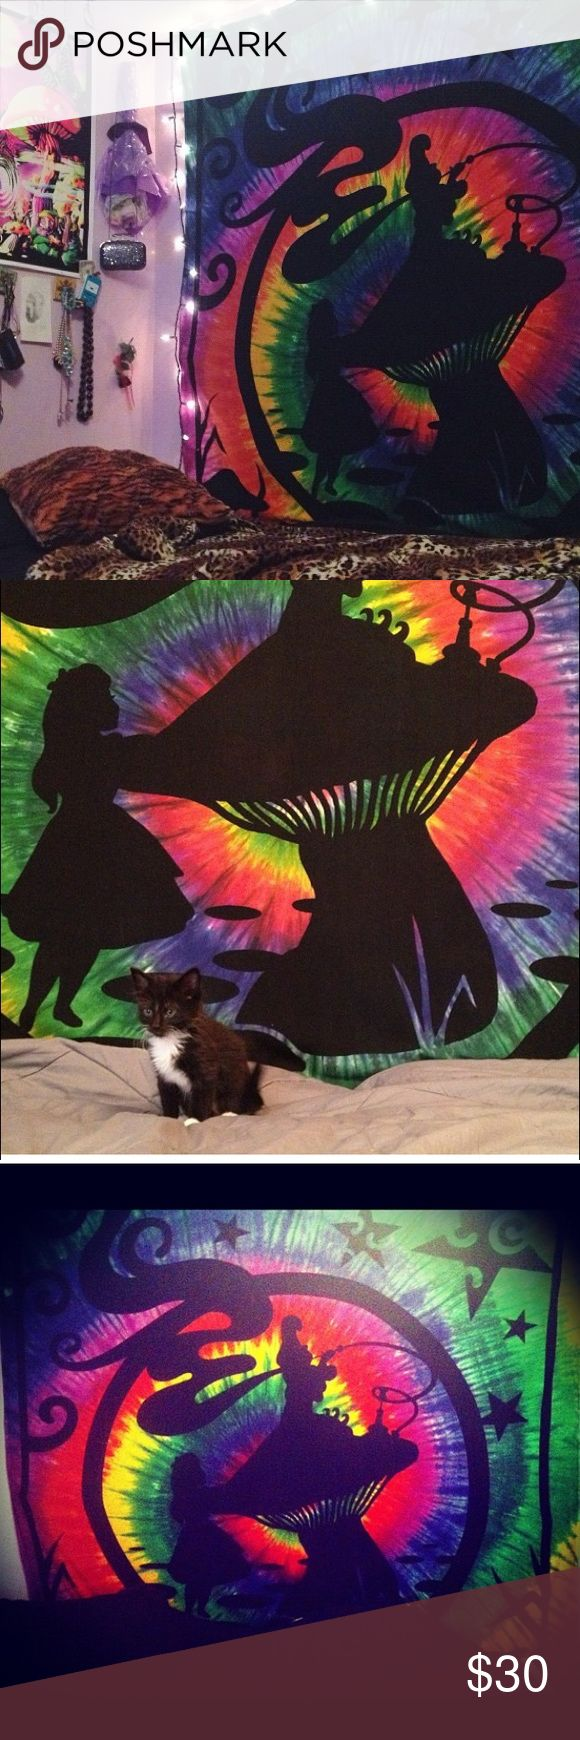 Alice in wonderland tie dye tapestry/trippy Alice in Wonderland Tie Dye Tapestry,   it covers my entire bedroom wall. Accessories